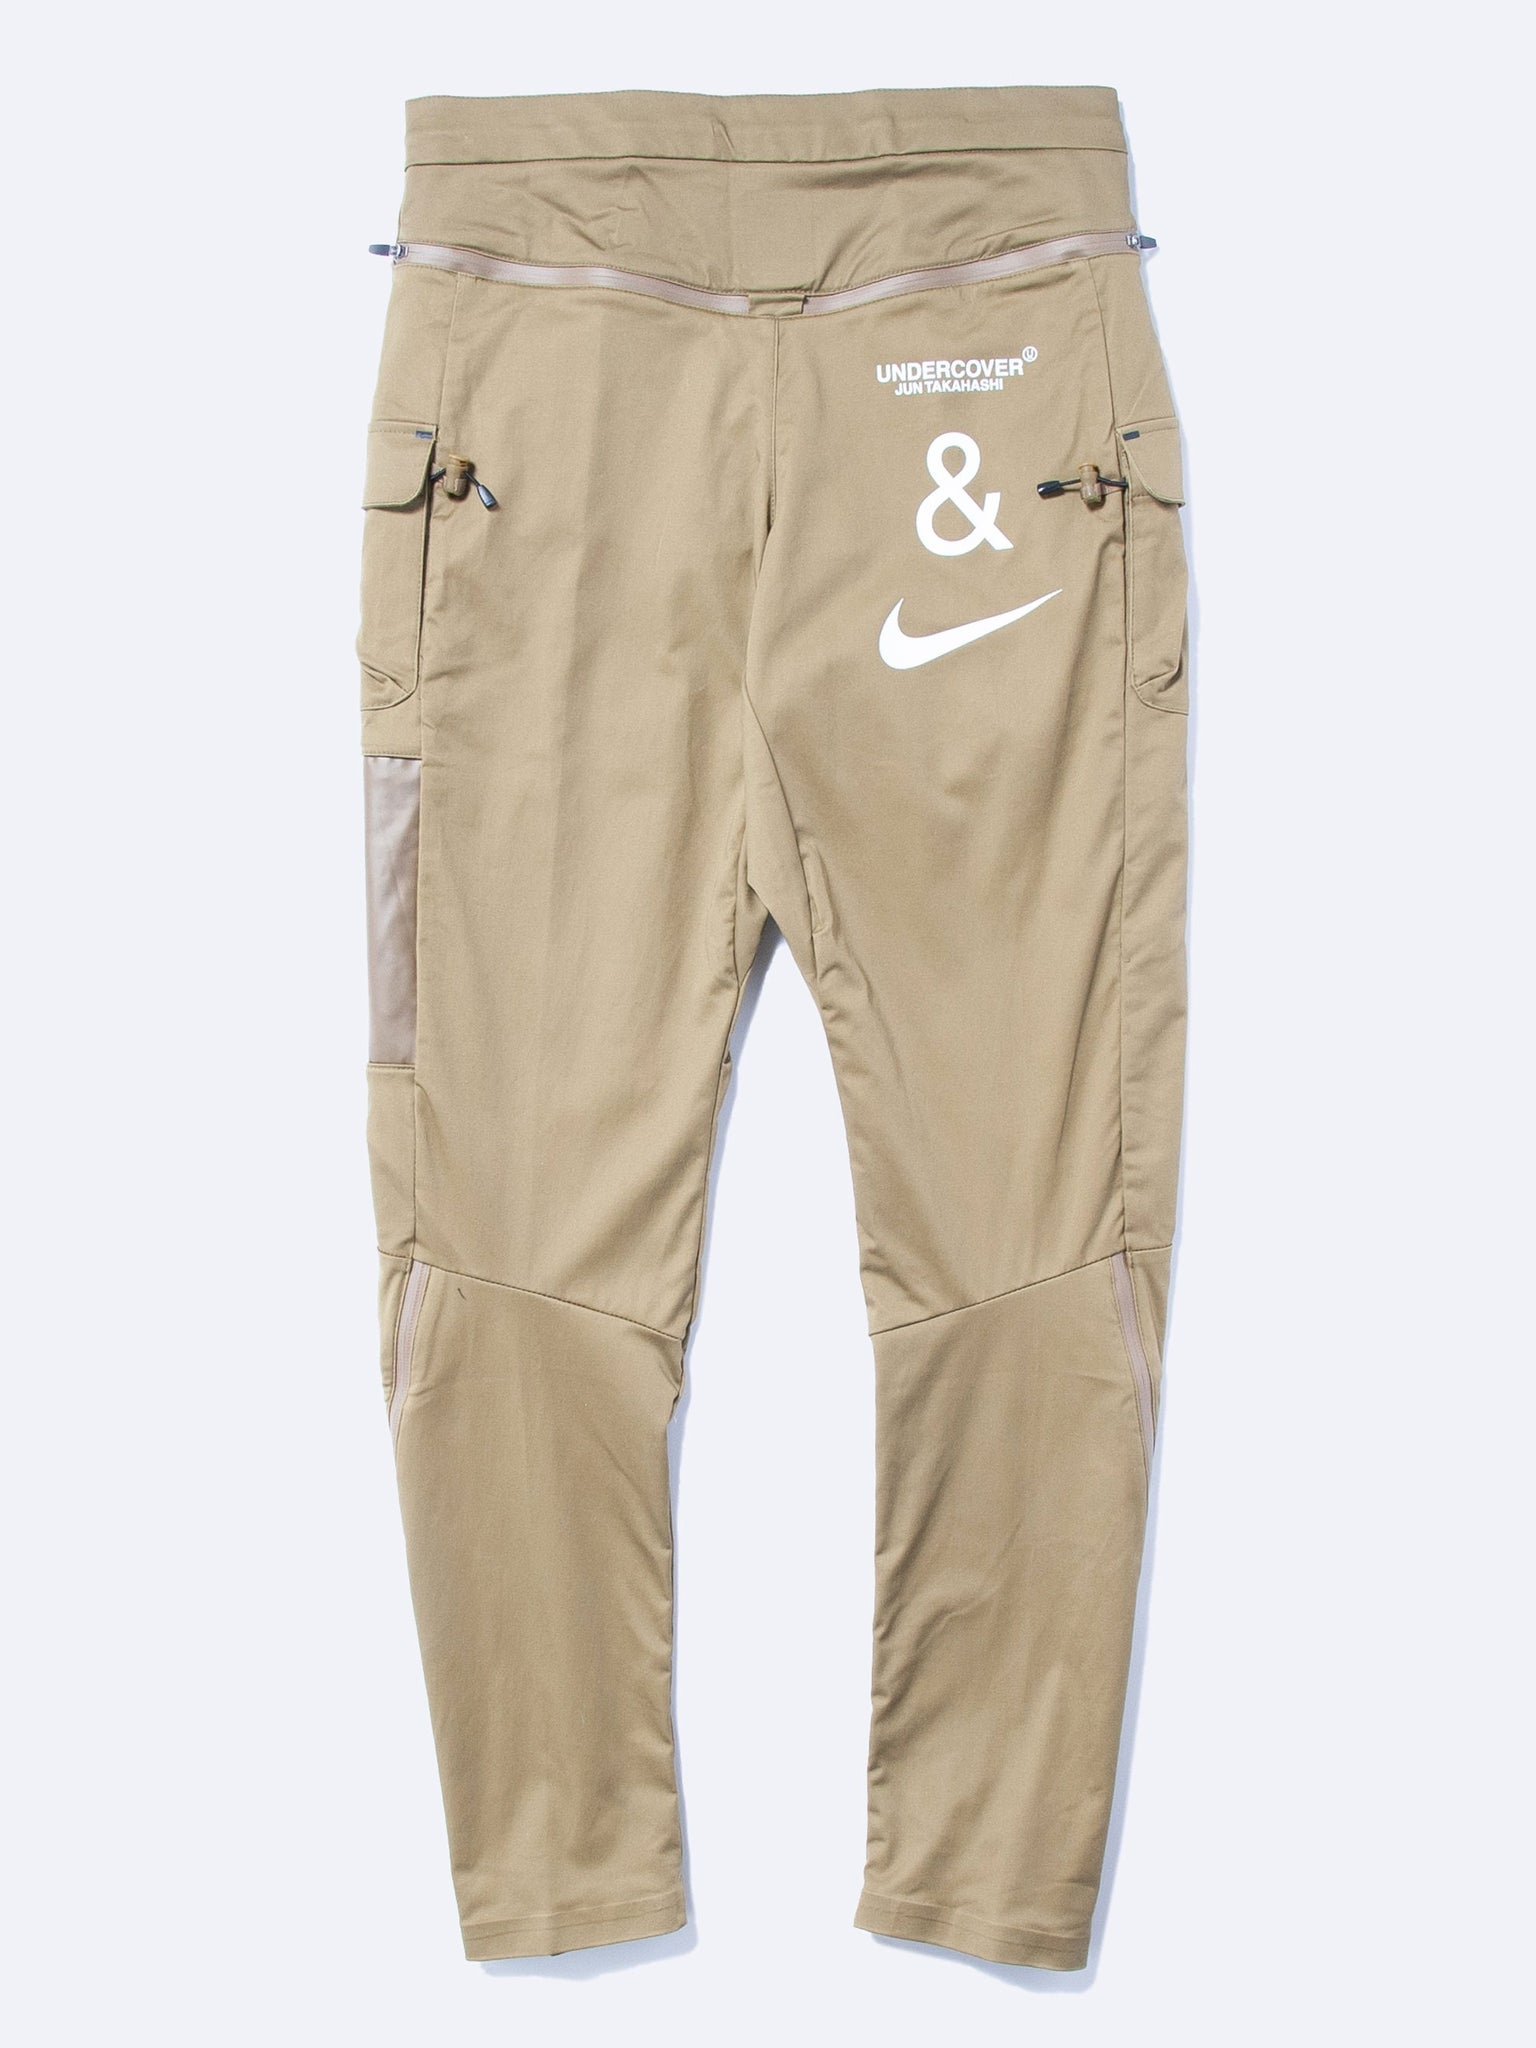 nike-x-undercover-nrg-undercover-pant